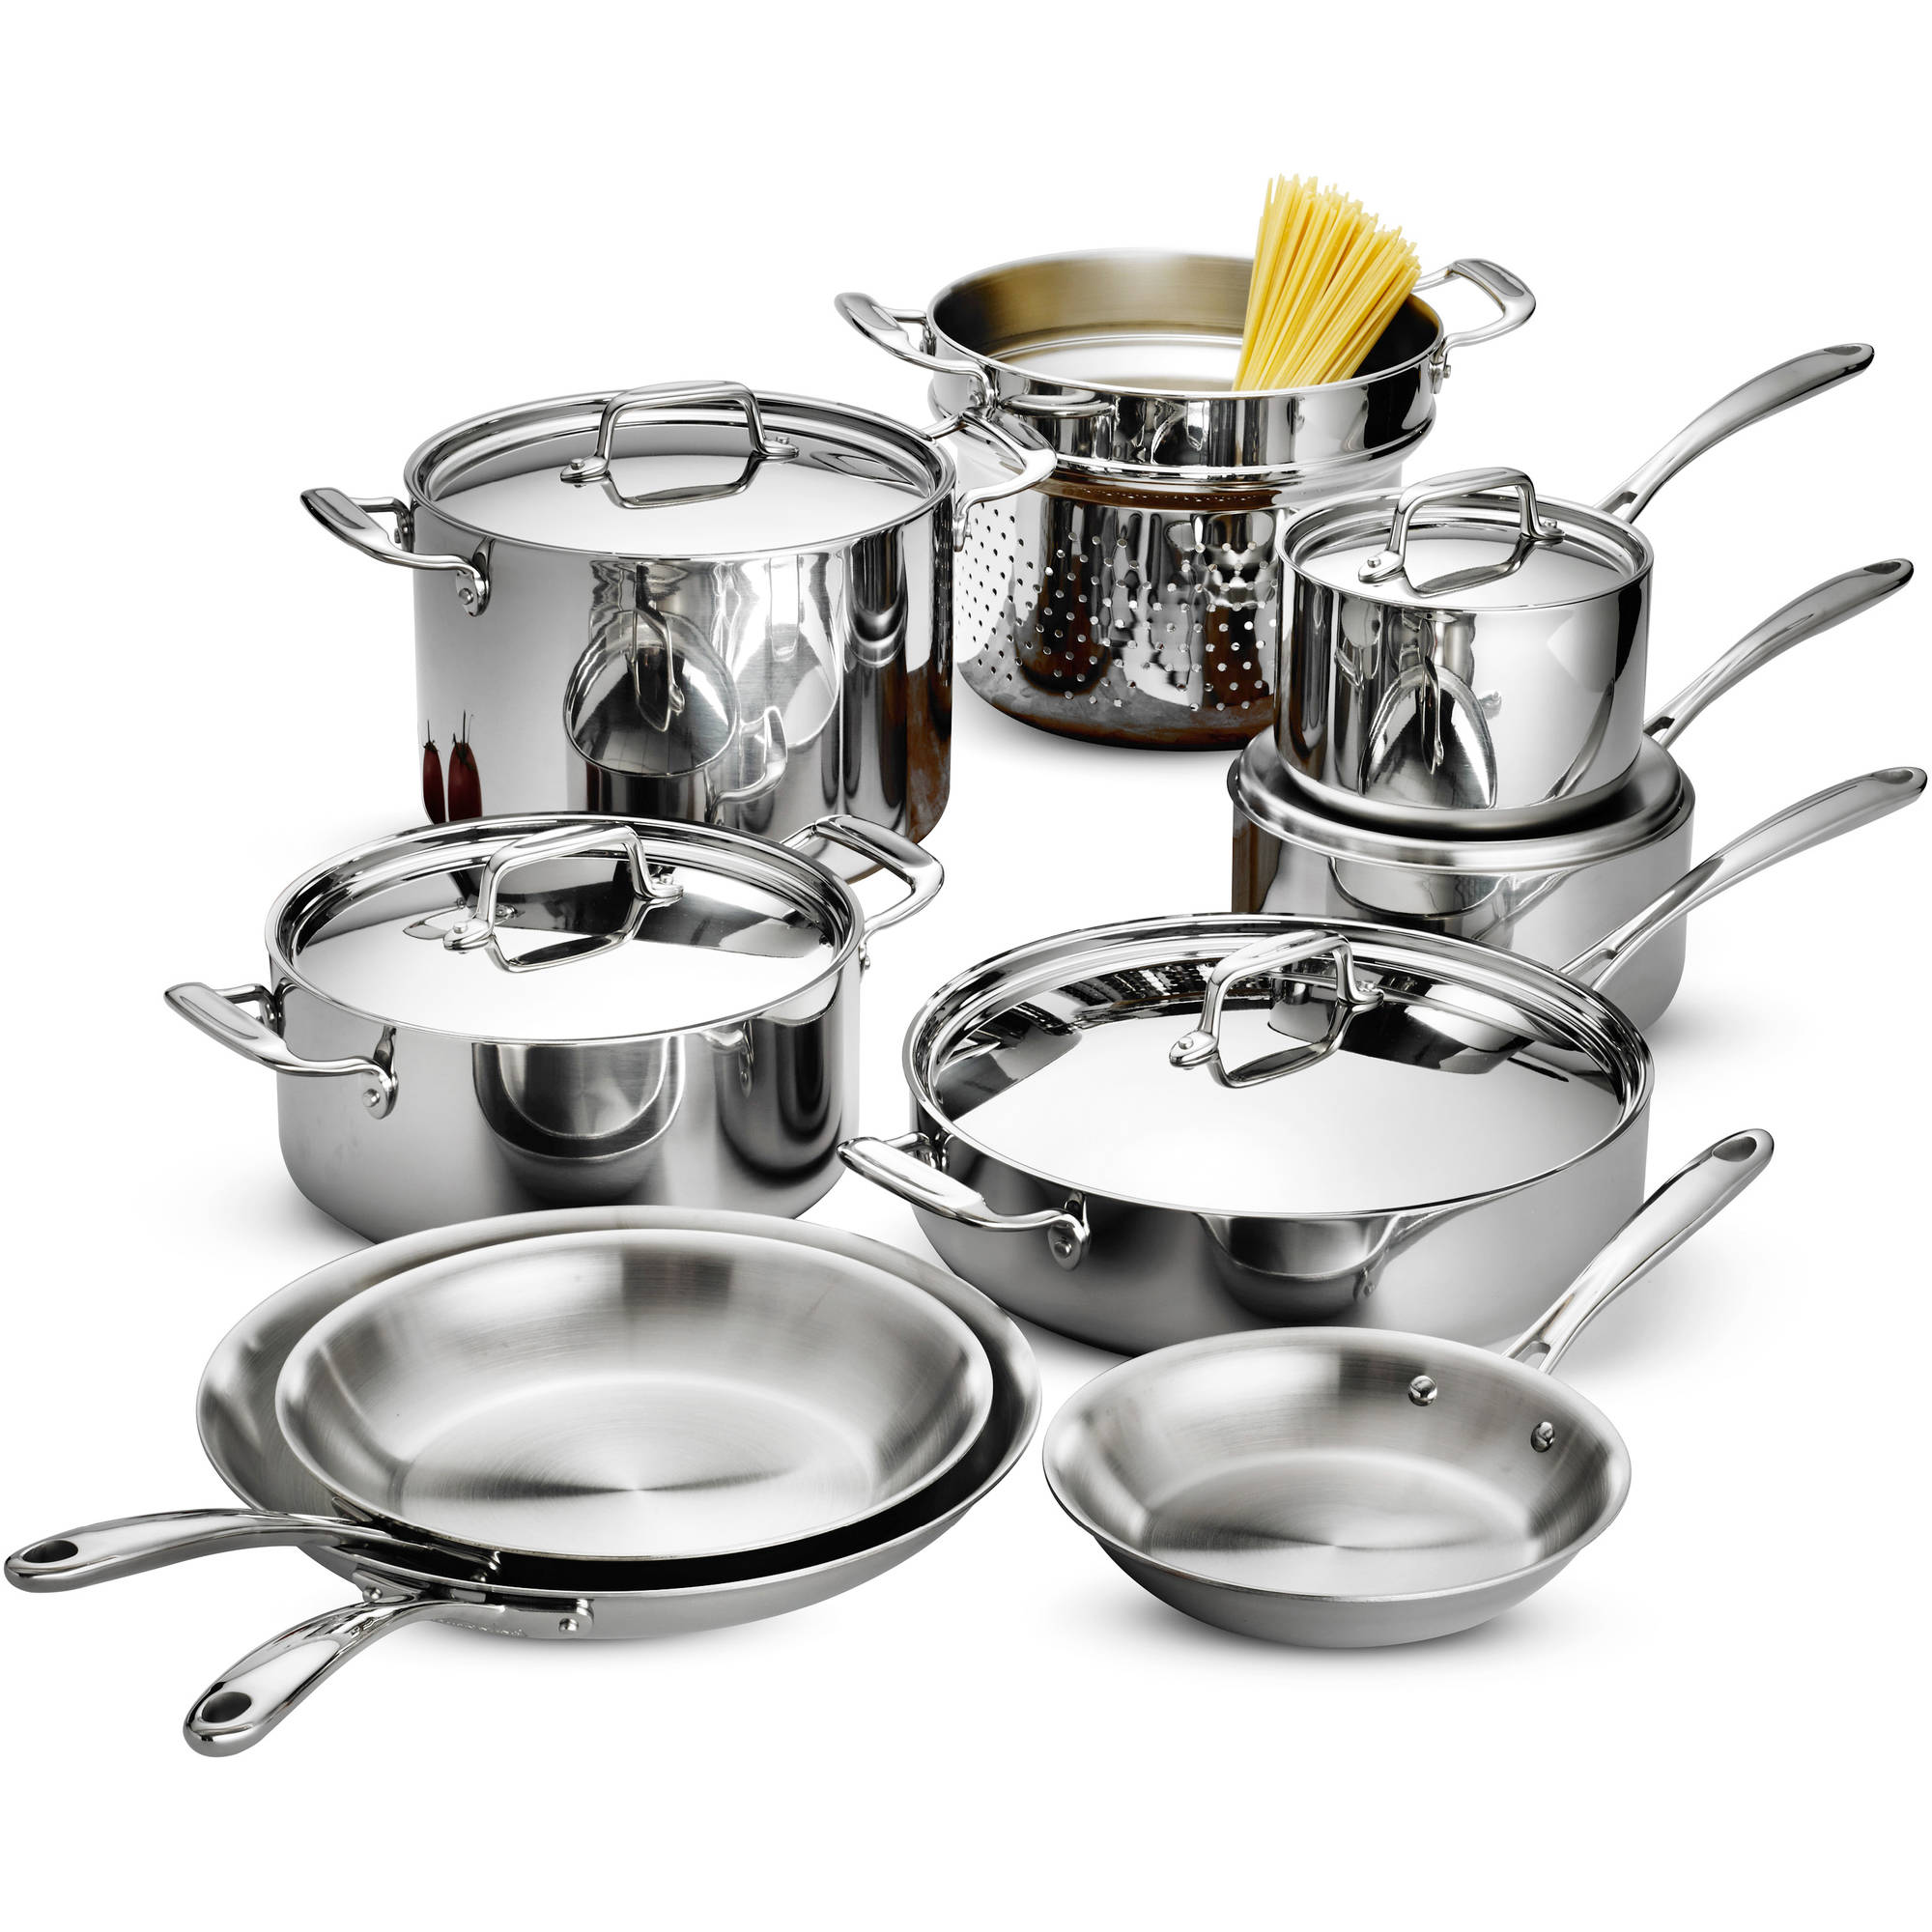 Tramontina 14 piece tri ply clad cookware set stainless for Kitchen set royal surabaya